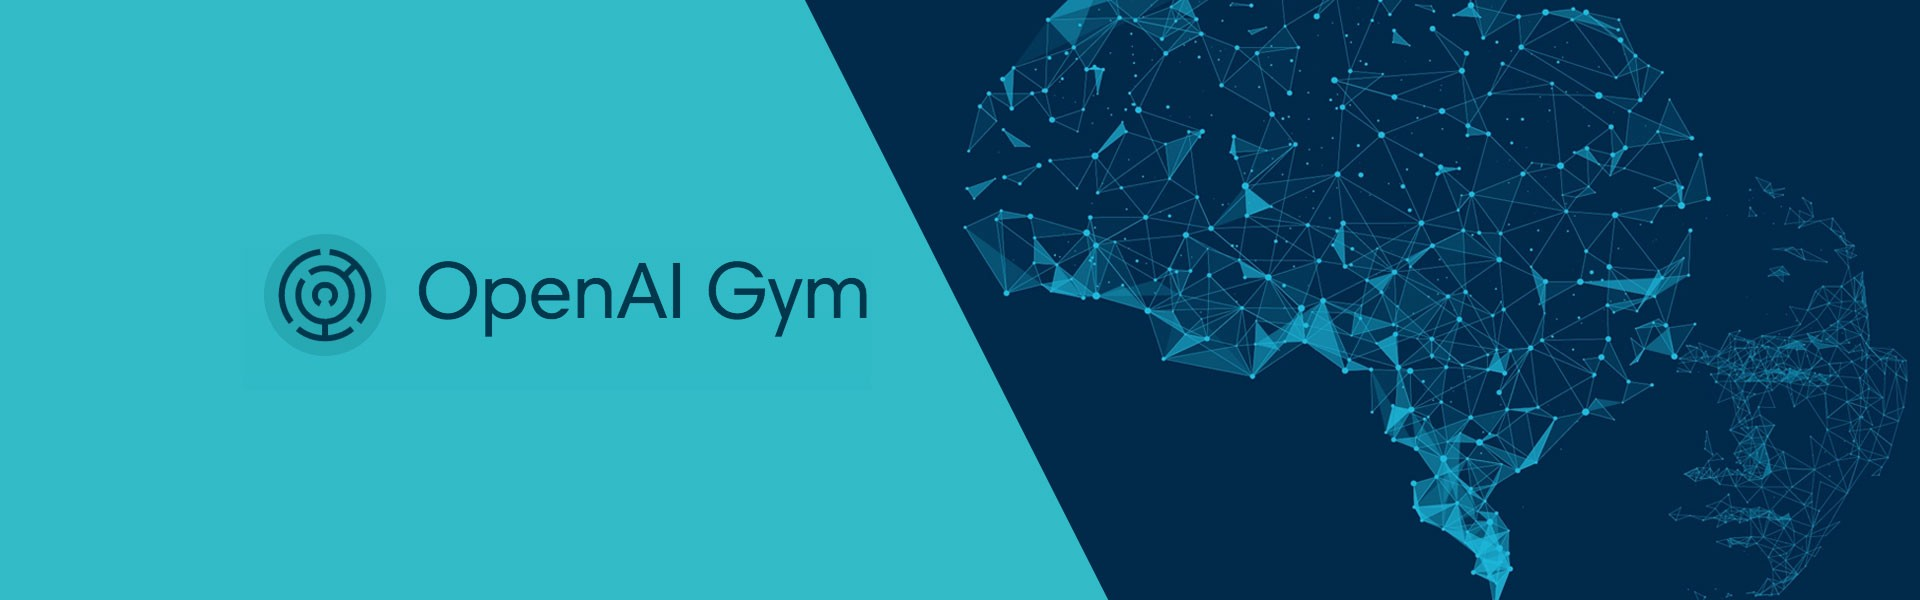 OpenAI Gym from scratch - Towards Data Science